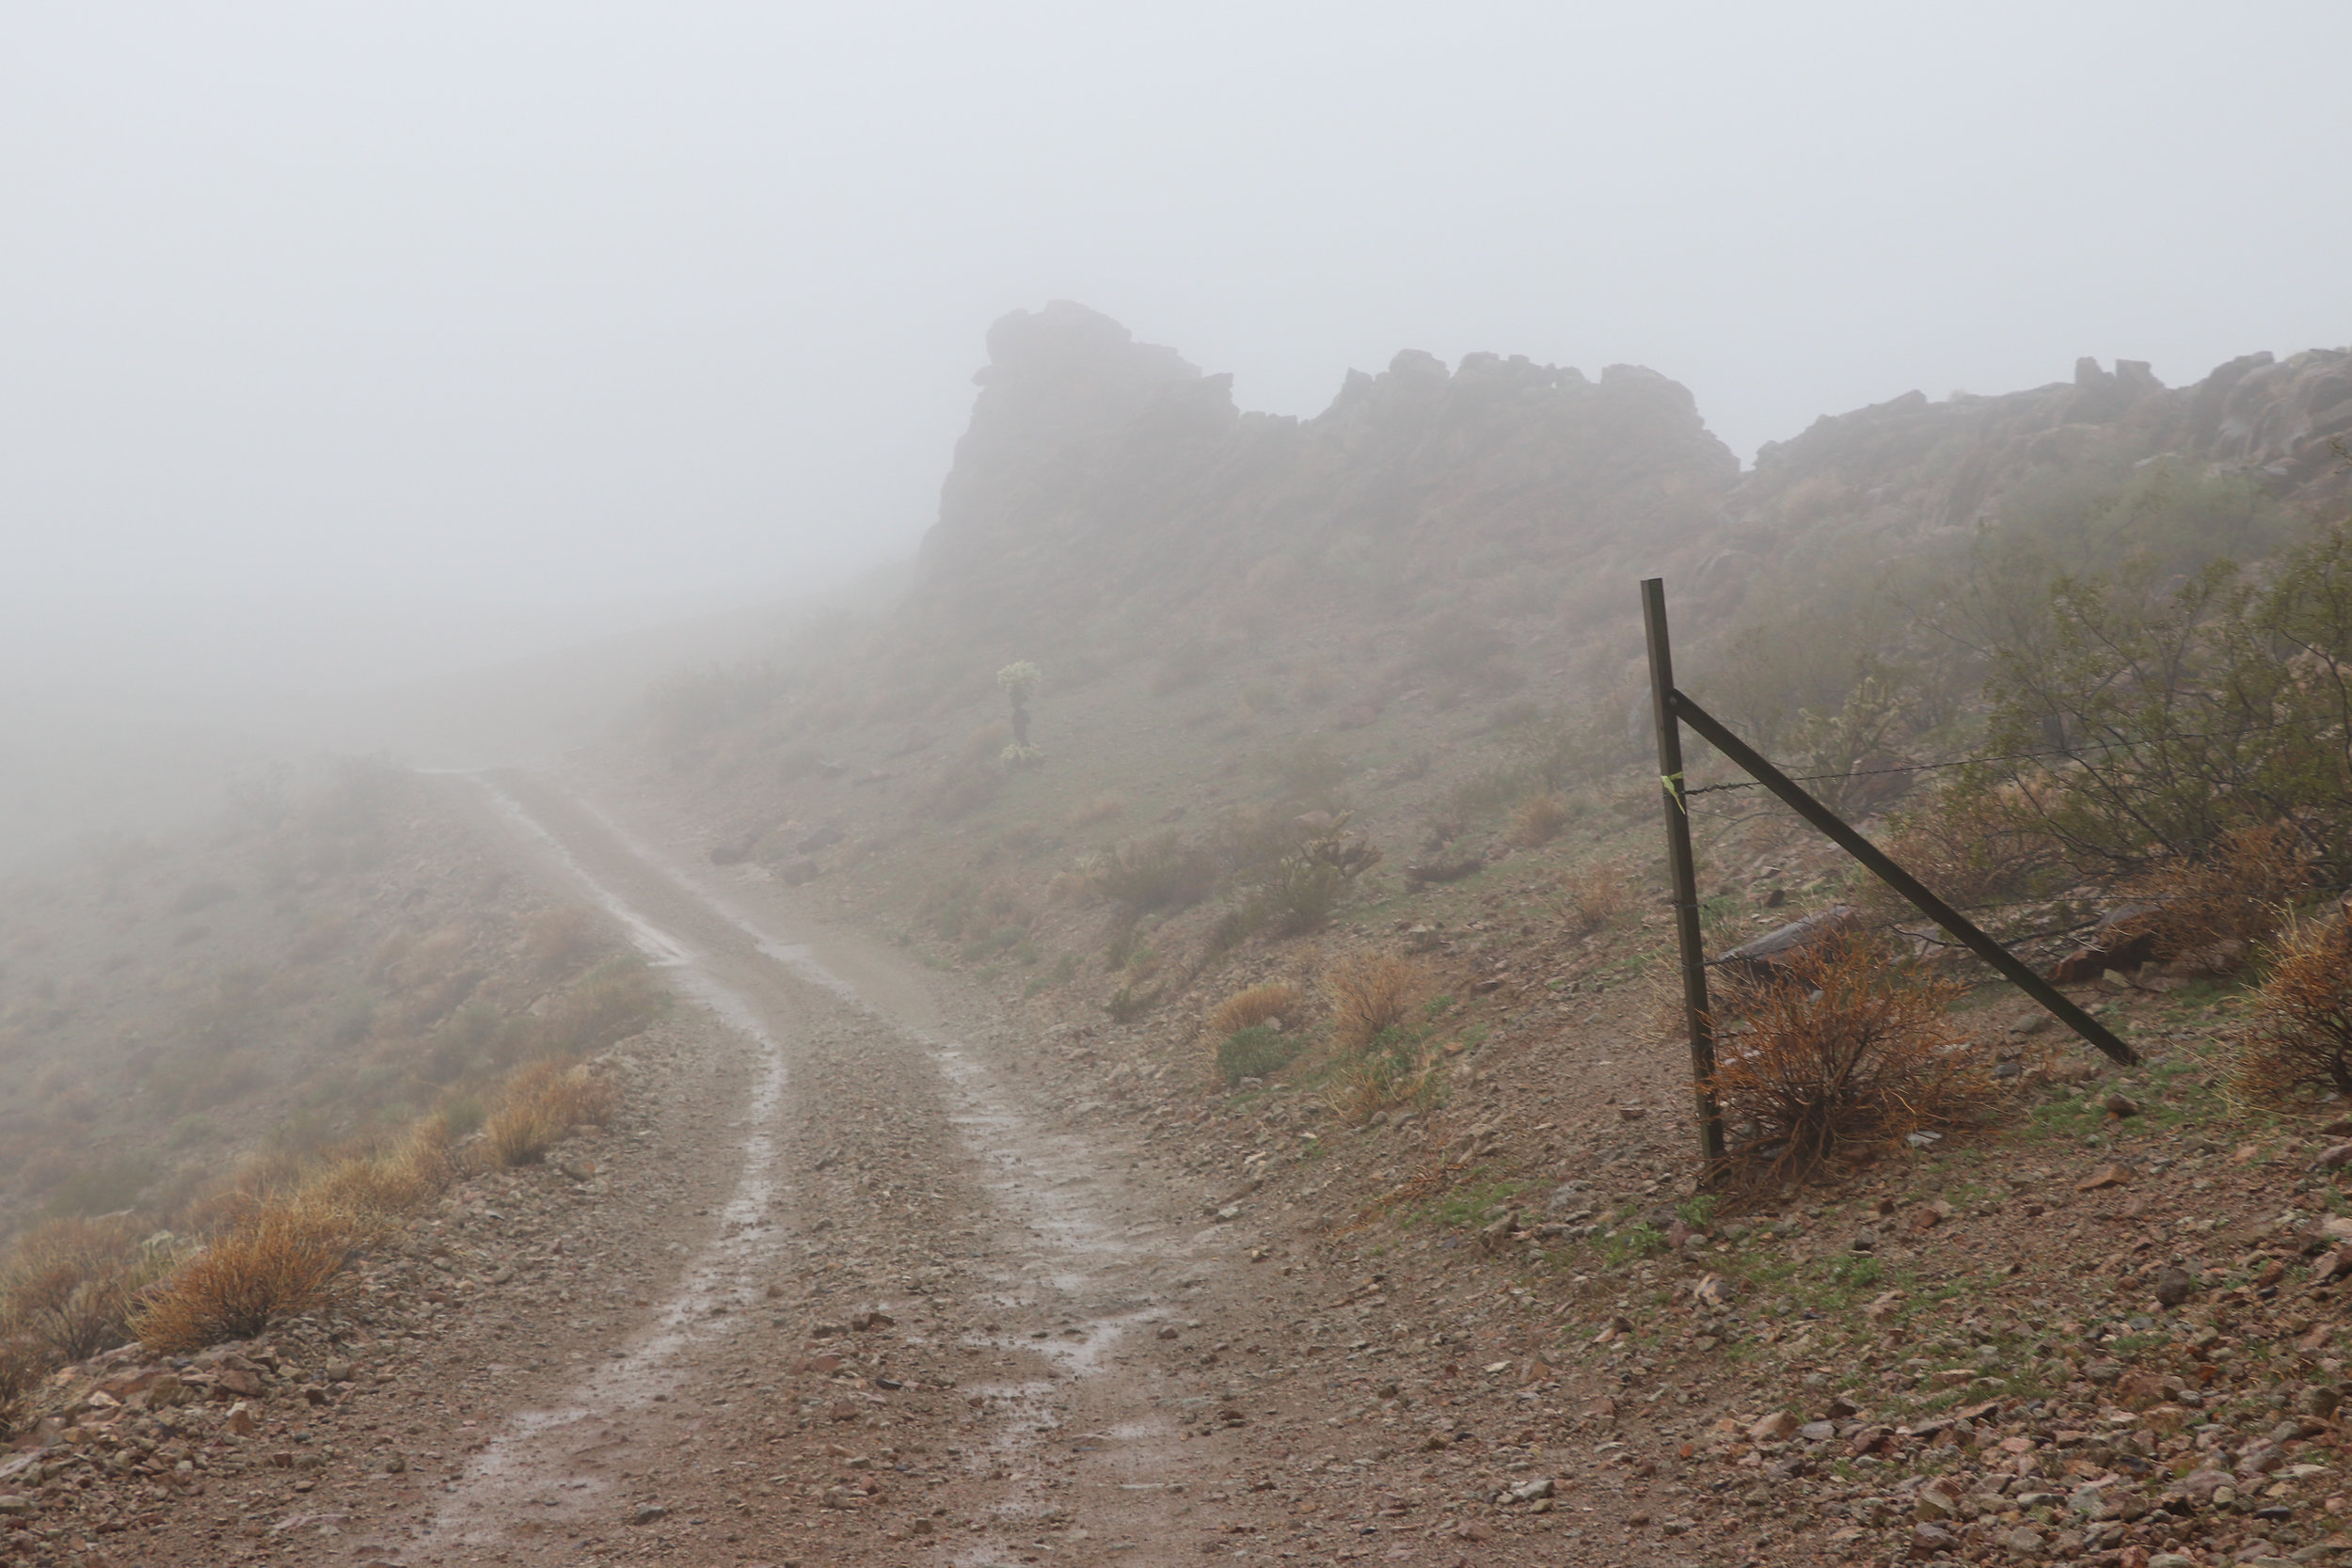 The fog was very thick by the time reached County Highway 1.